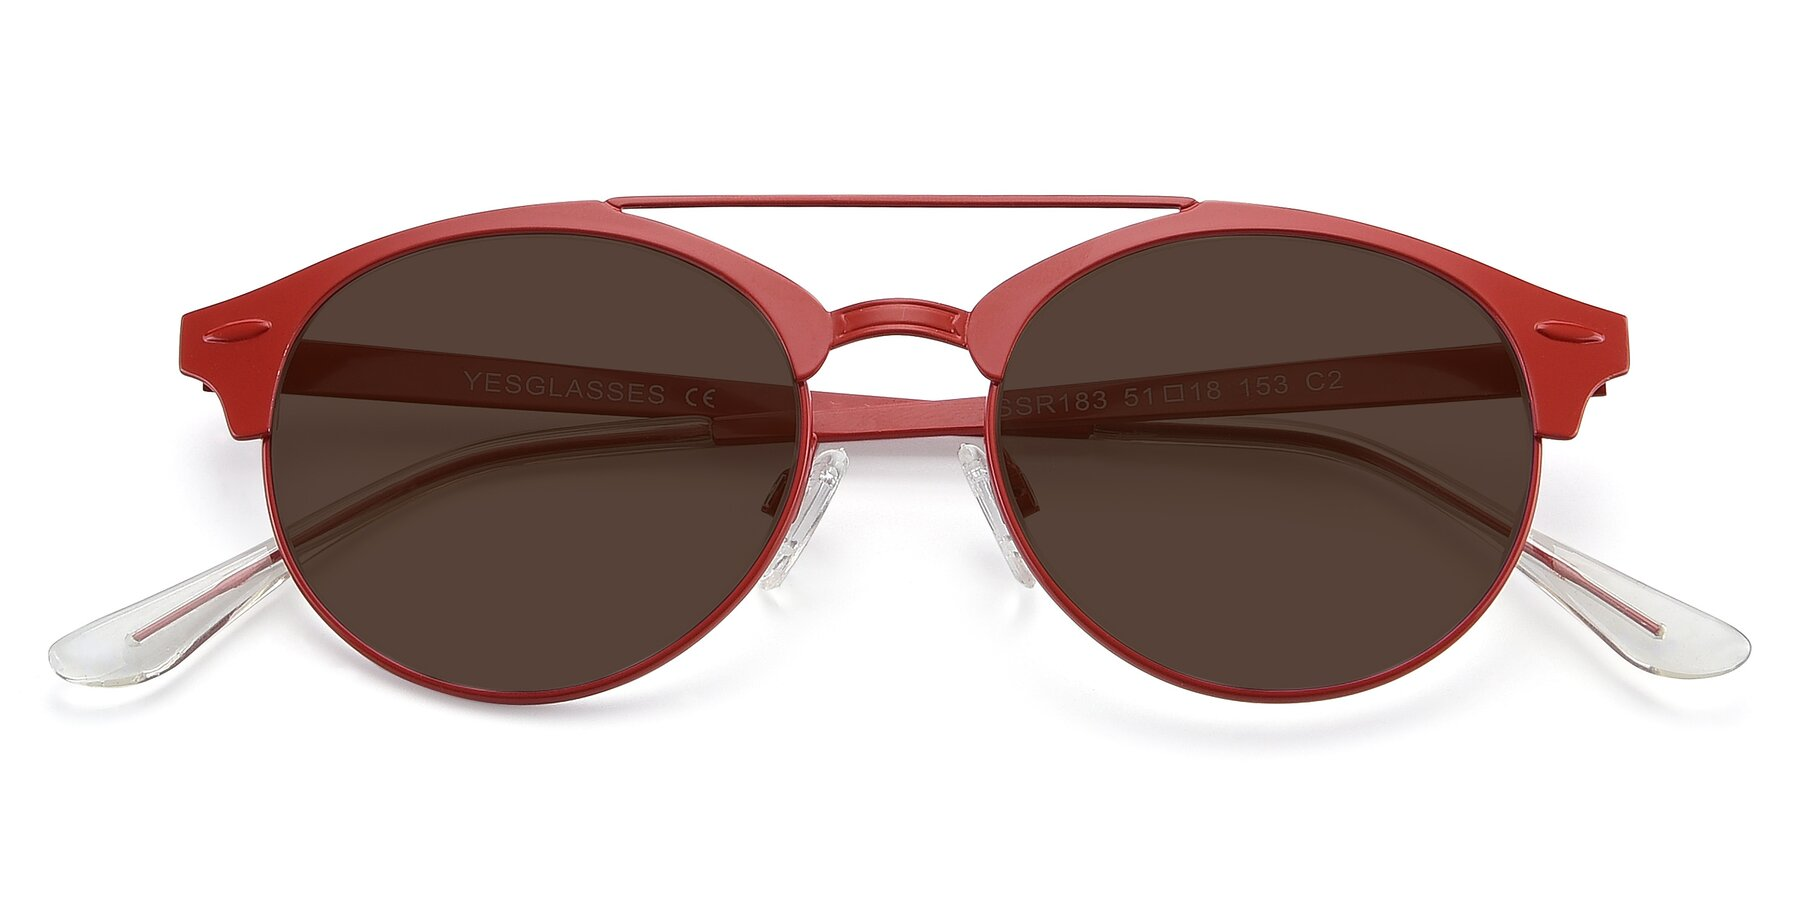 Folded Front of SSR183 in Red with Brown Tinted Lenses